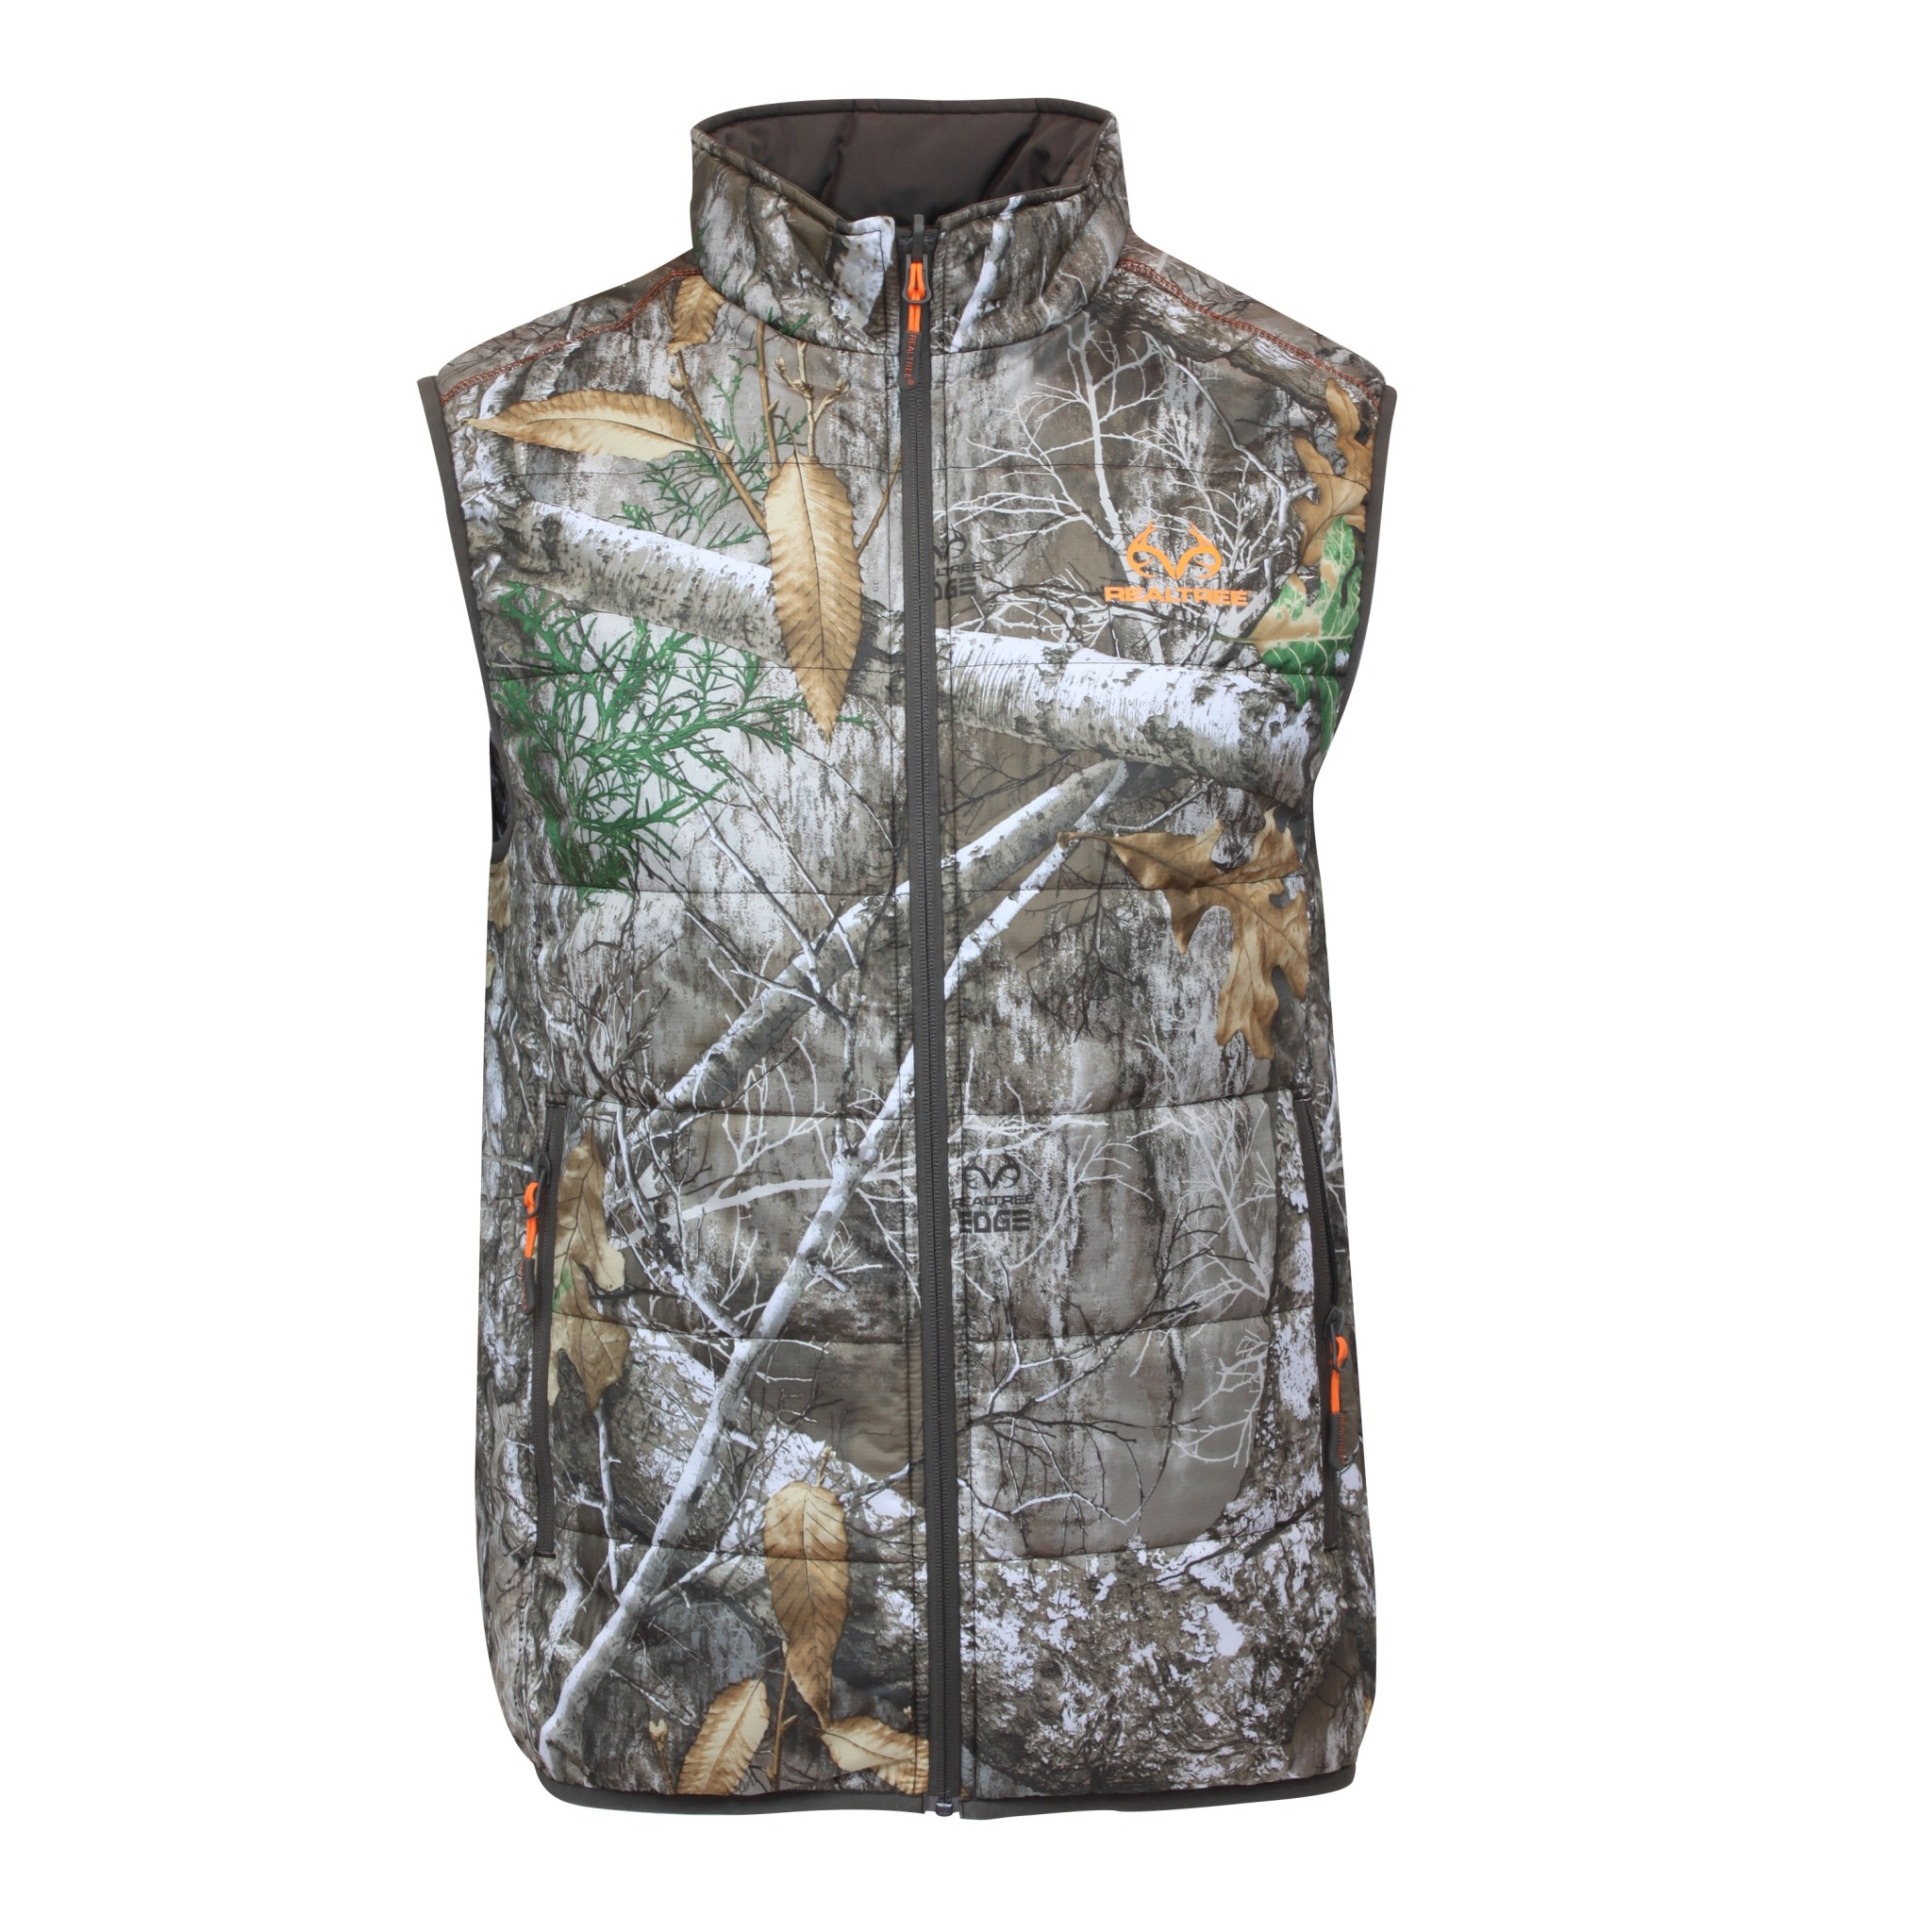 MENS VEST INSULATED by TAKSON INTERNATIONAL SOURCING LIMITED